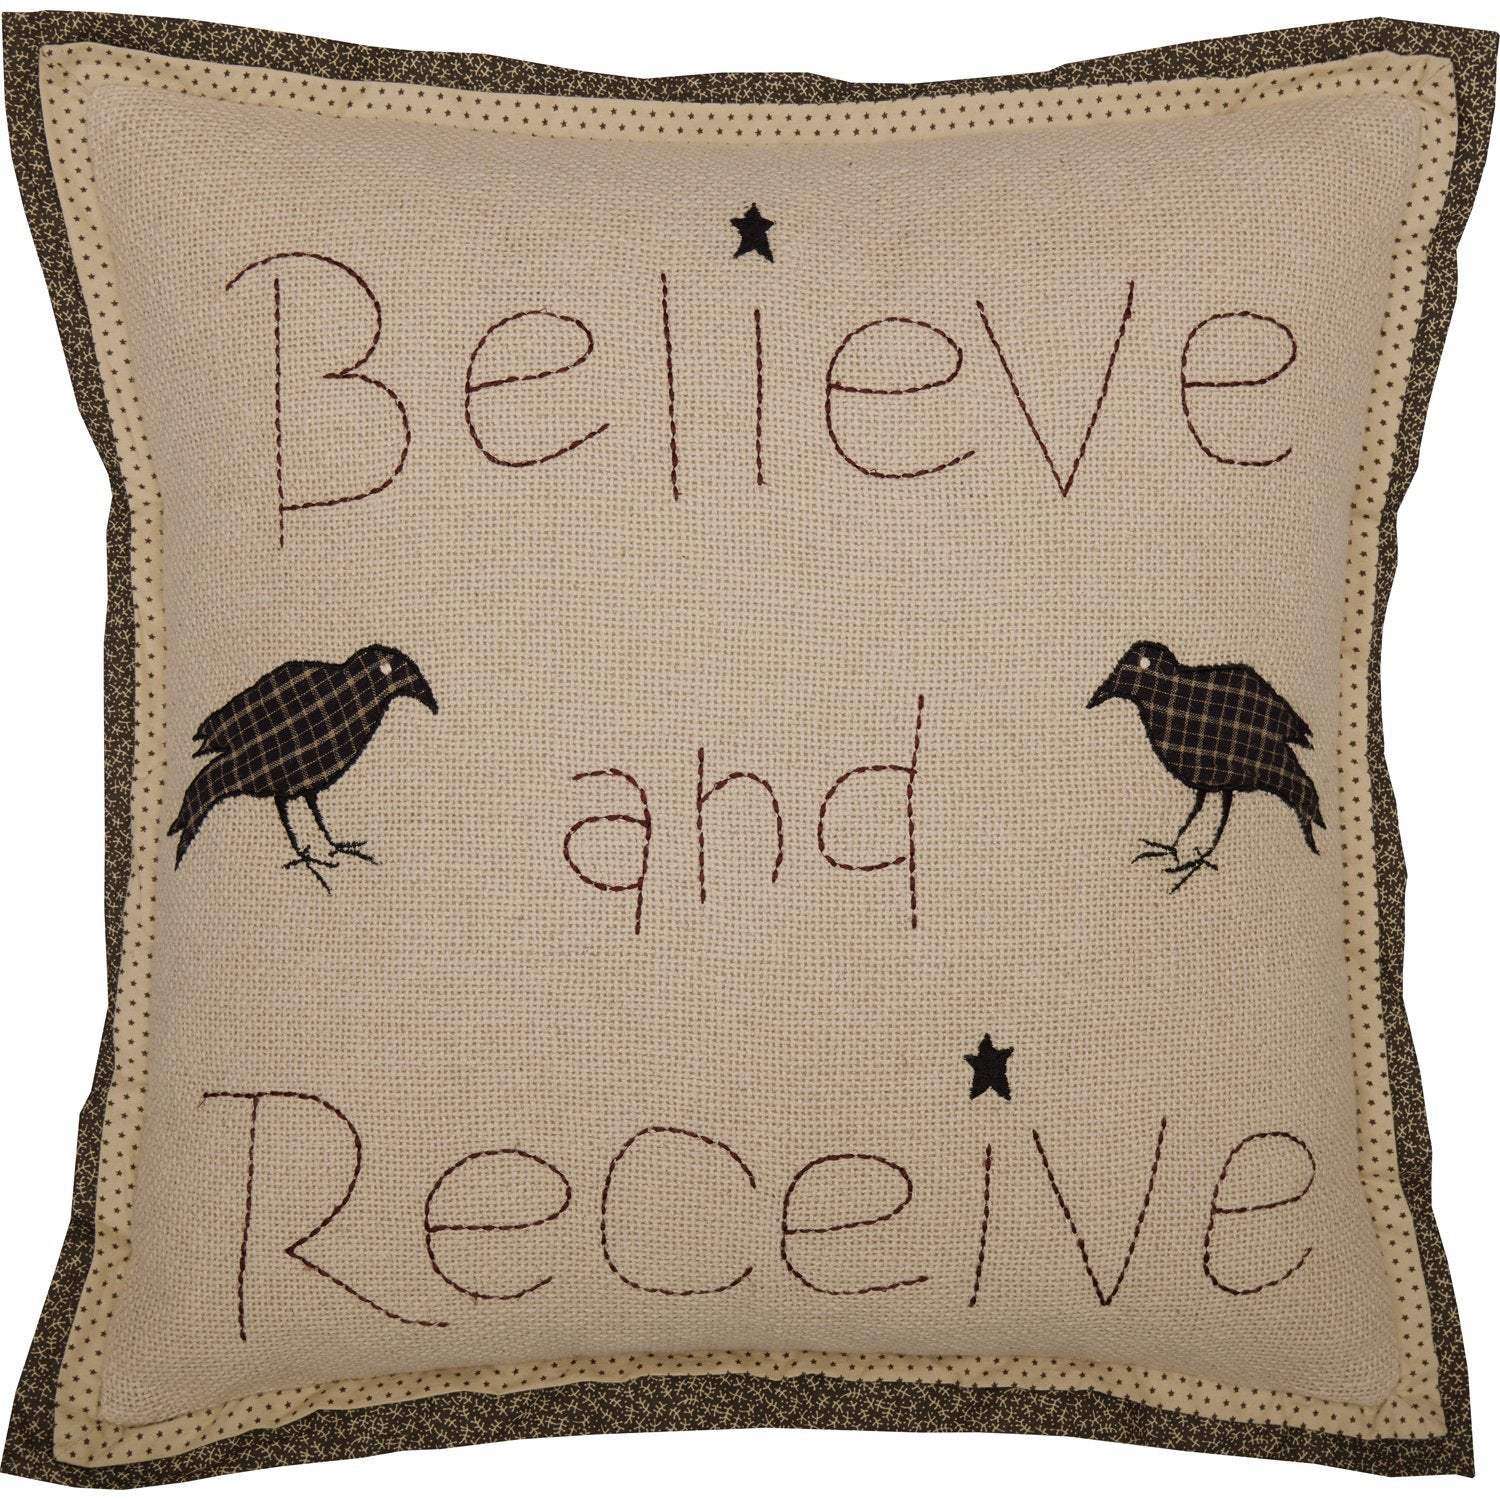 Kettle Grove Pillow Cover.